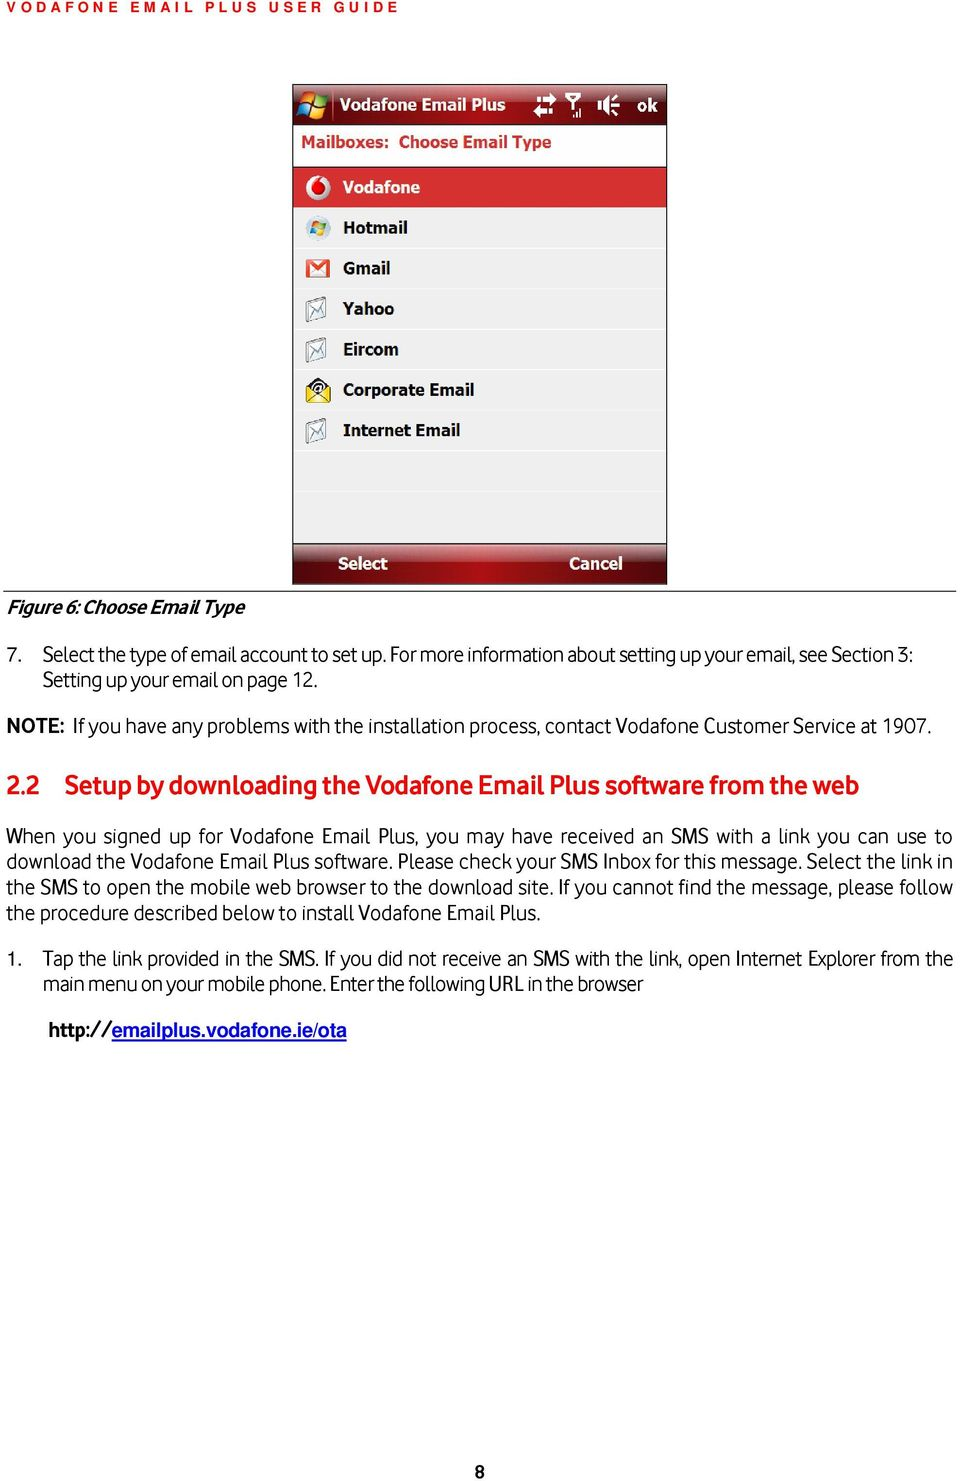 2 Setup by downloading the Vodafone Email Plus software from the web When you signed up for Vodafone Email Plus, you may have received an SMS with a link you can use to download the Vodafone Email